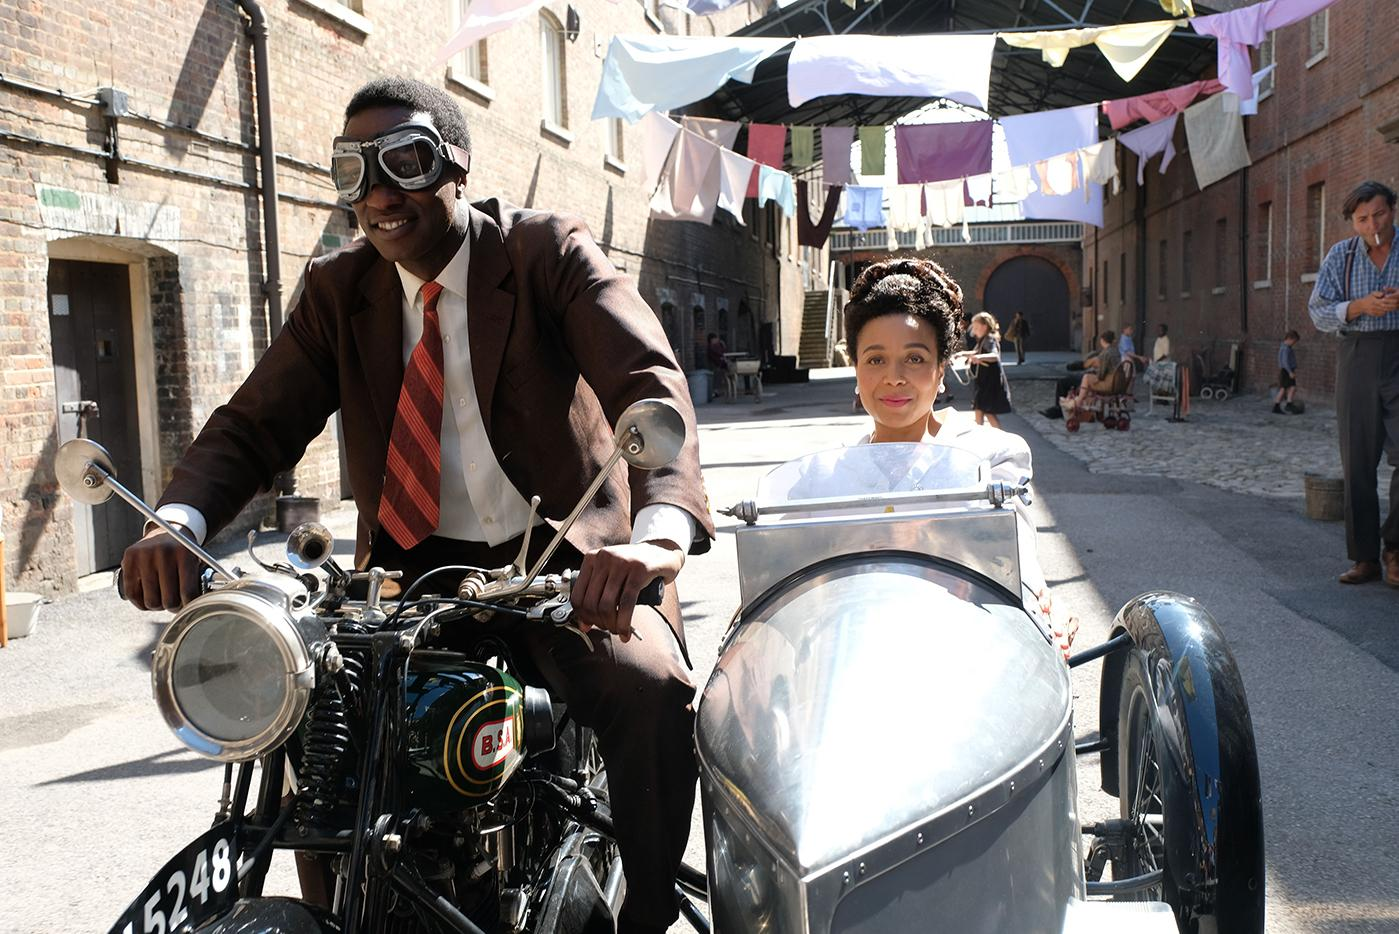 Cyril and Lucille in Call the Midwife. Photo: BBC/Neal Street Productions